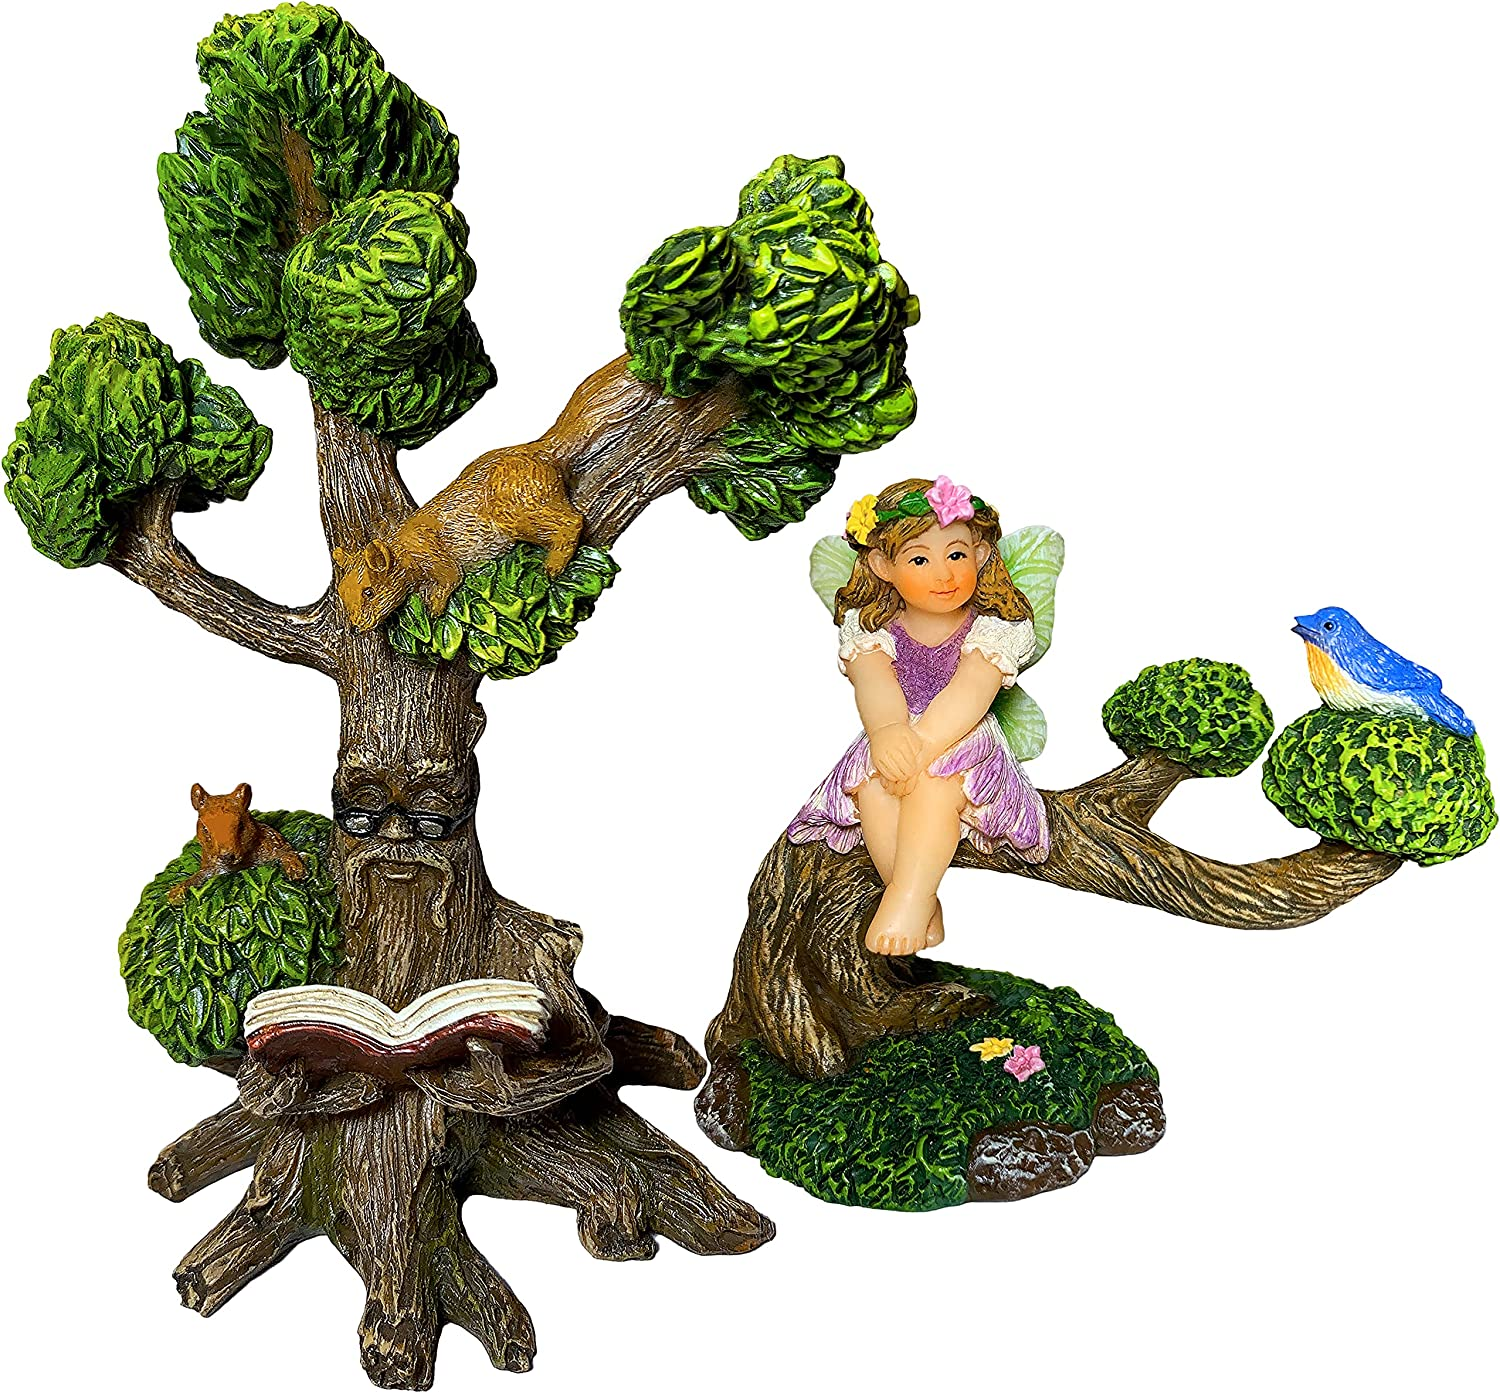 Mood Lab Fairy Garden Miniature Fairy with Reading Tree Statue - Figurines and Accessories Kit of 2 pcs